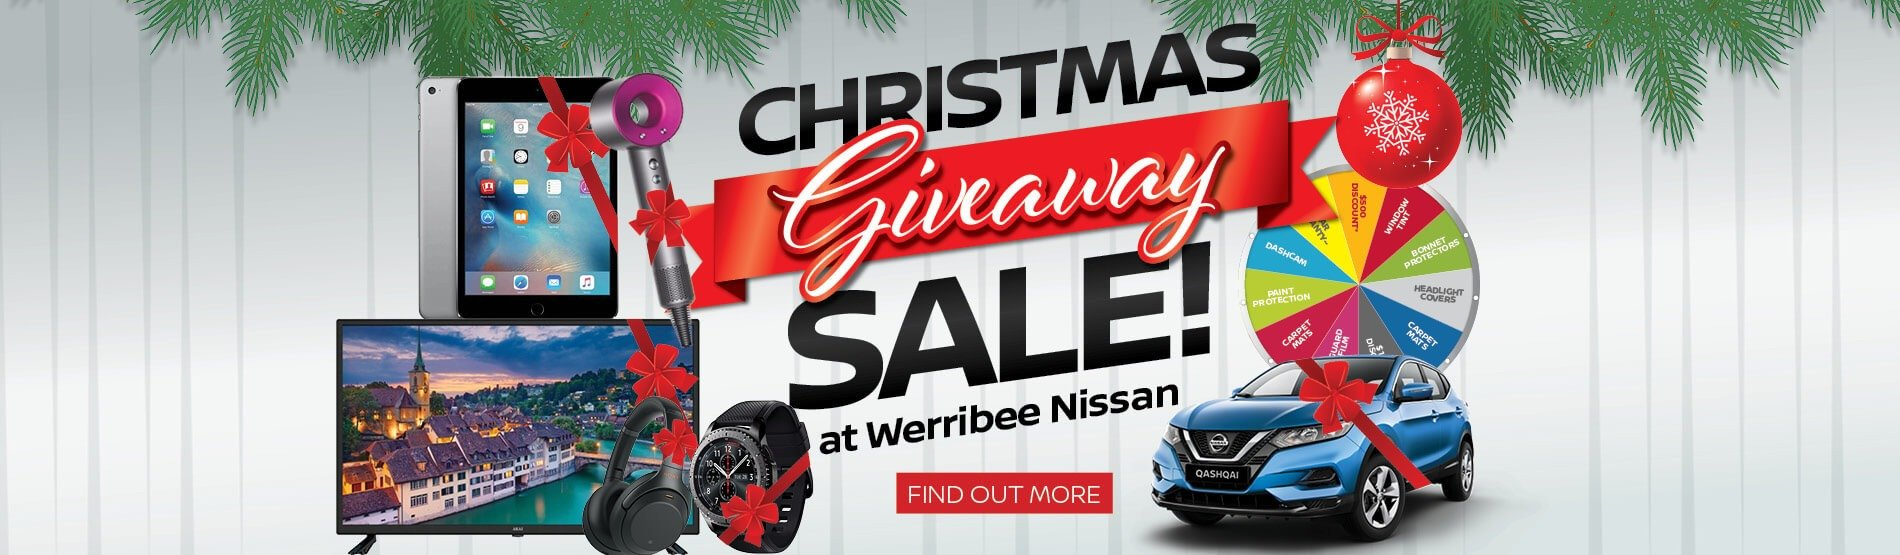 Werribee Nissan - Christmas Giveaway Sale!